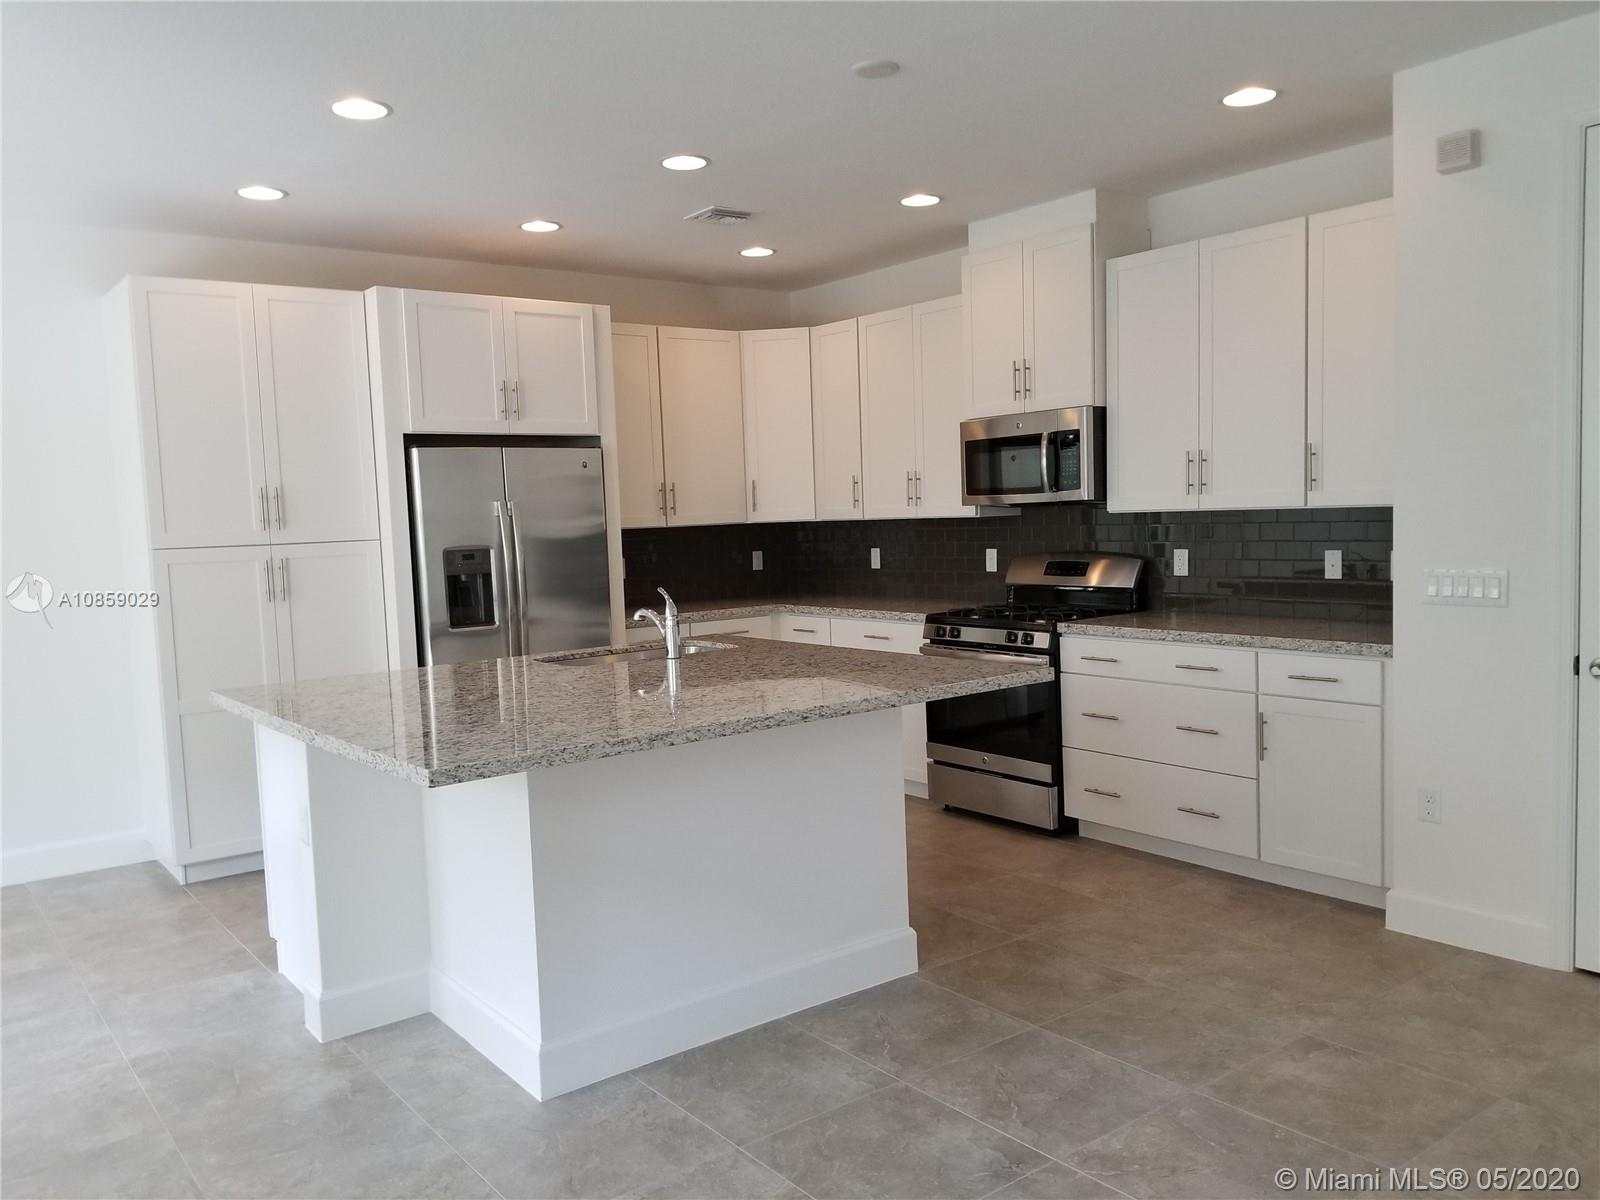 Great opportunity to own new construction, never lived in, upgraded townhouse in the resort-style community of Artesia. Don't walk, run to this unit before it sells. Upgraded kitchen with granite countertops, stainless steel appliances, upgraded cabinets. all impact windows throughout. Spa-like master bathroom with a soaking tub and separate oversized shower. Recessed lights throughout. Community offers several pools, tennis courts, half indoor basketball court, BBQ area, pool tables, party rooms and many more places to enjoy the afternoons. Hurry and call for a private tour.